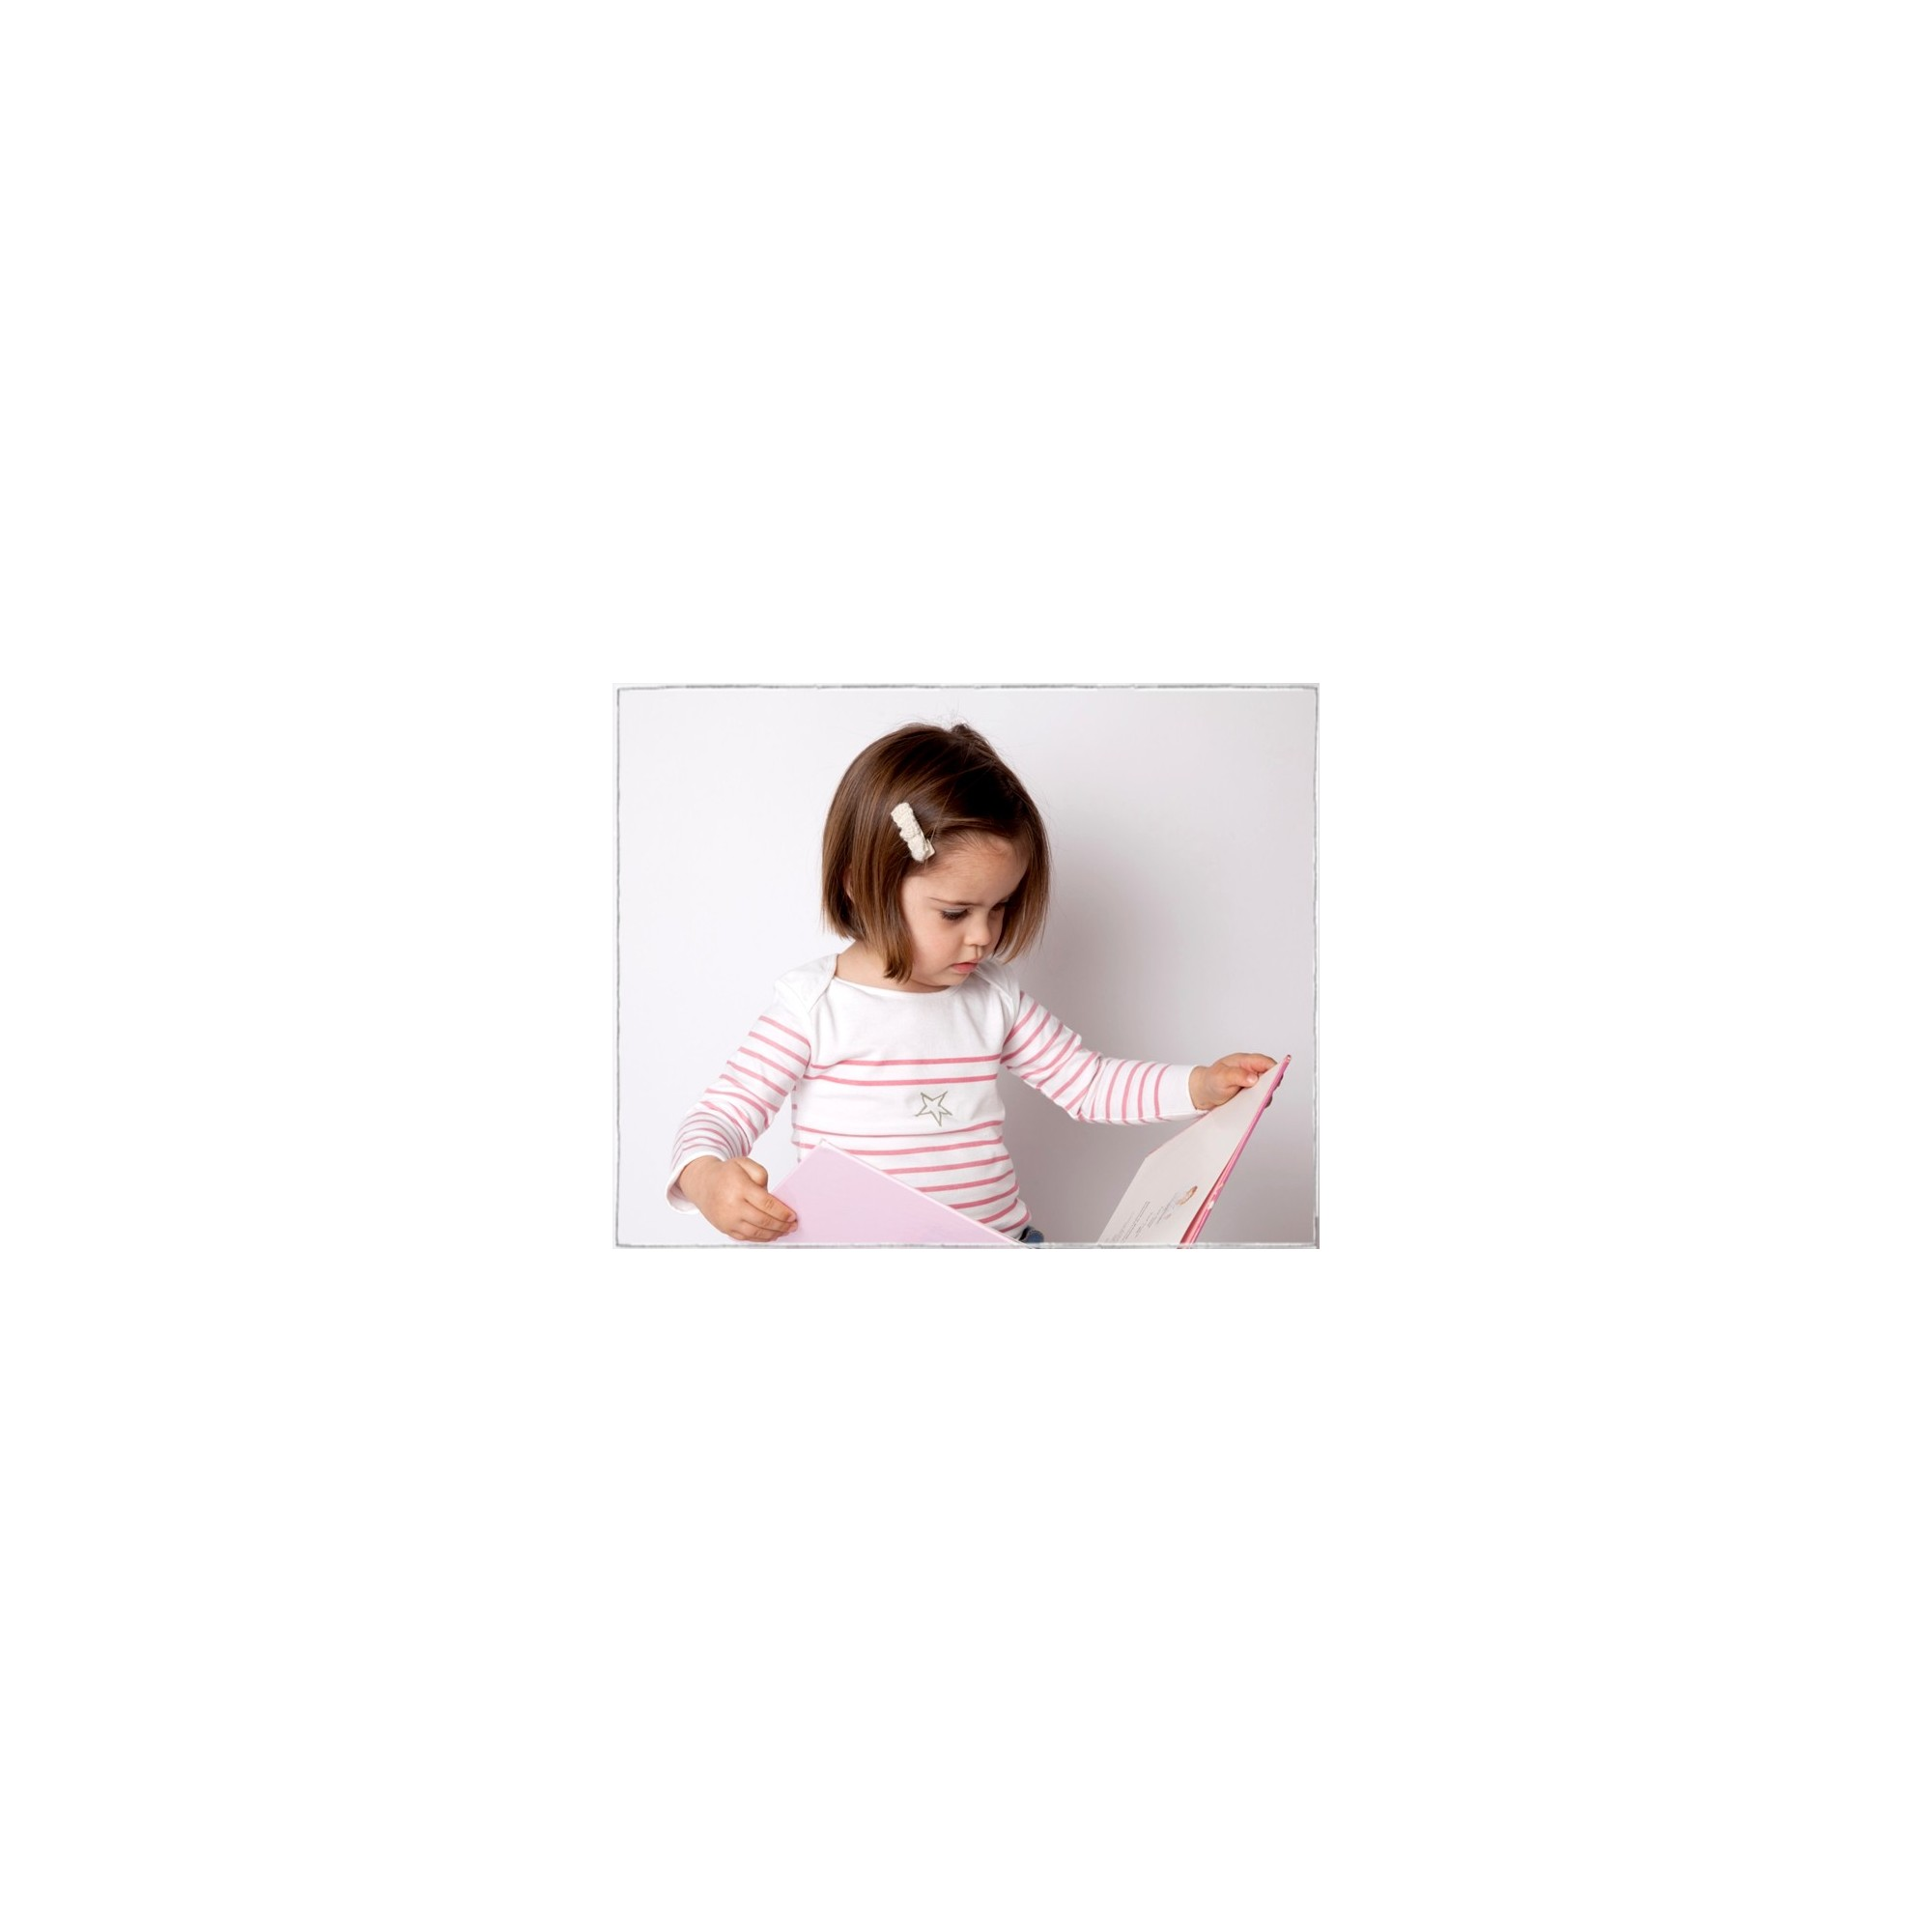 T-shirt marinière for baby girls pink stripes 100% cotton